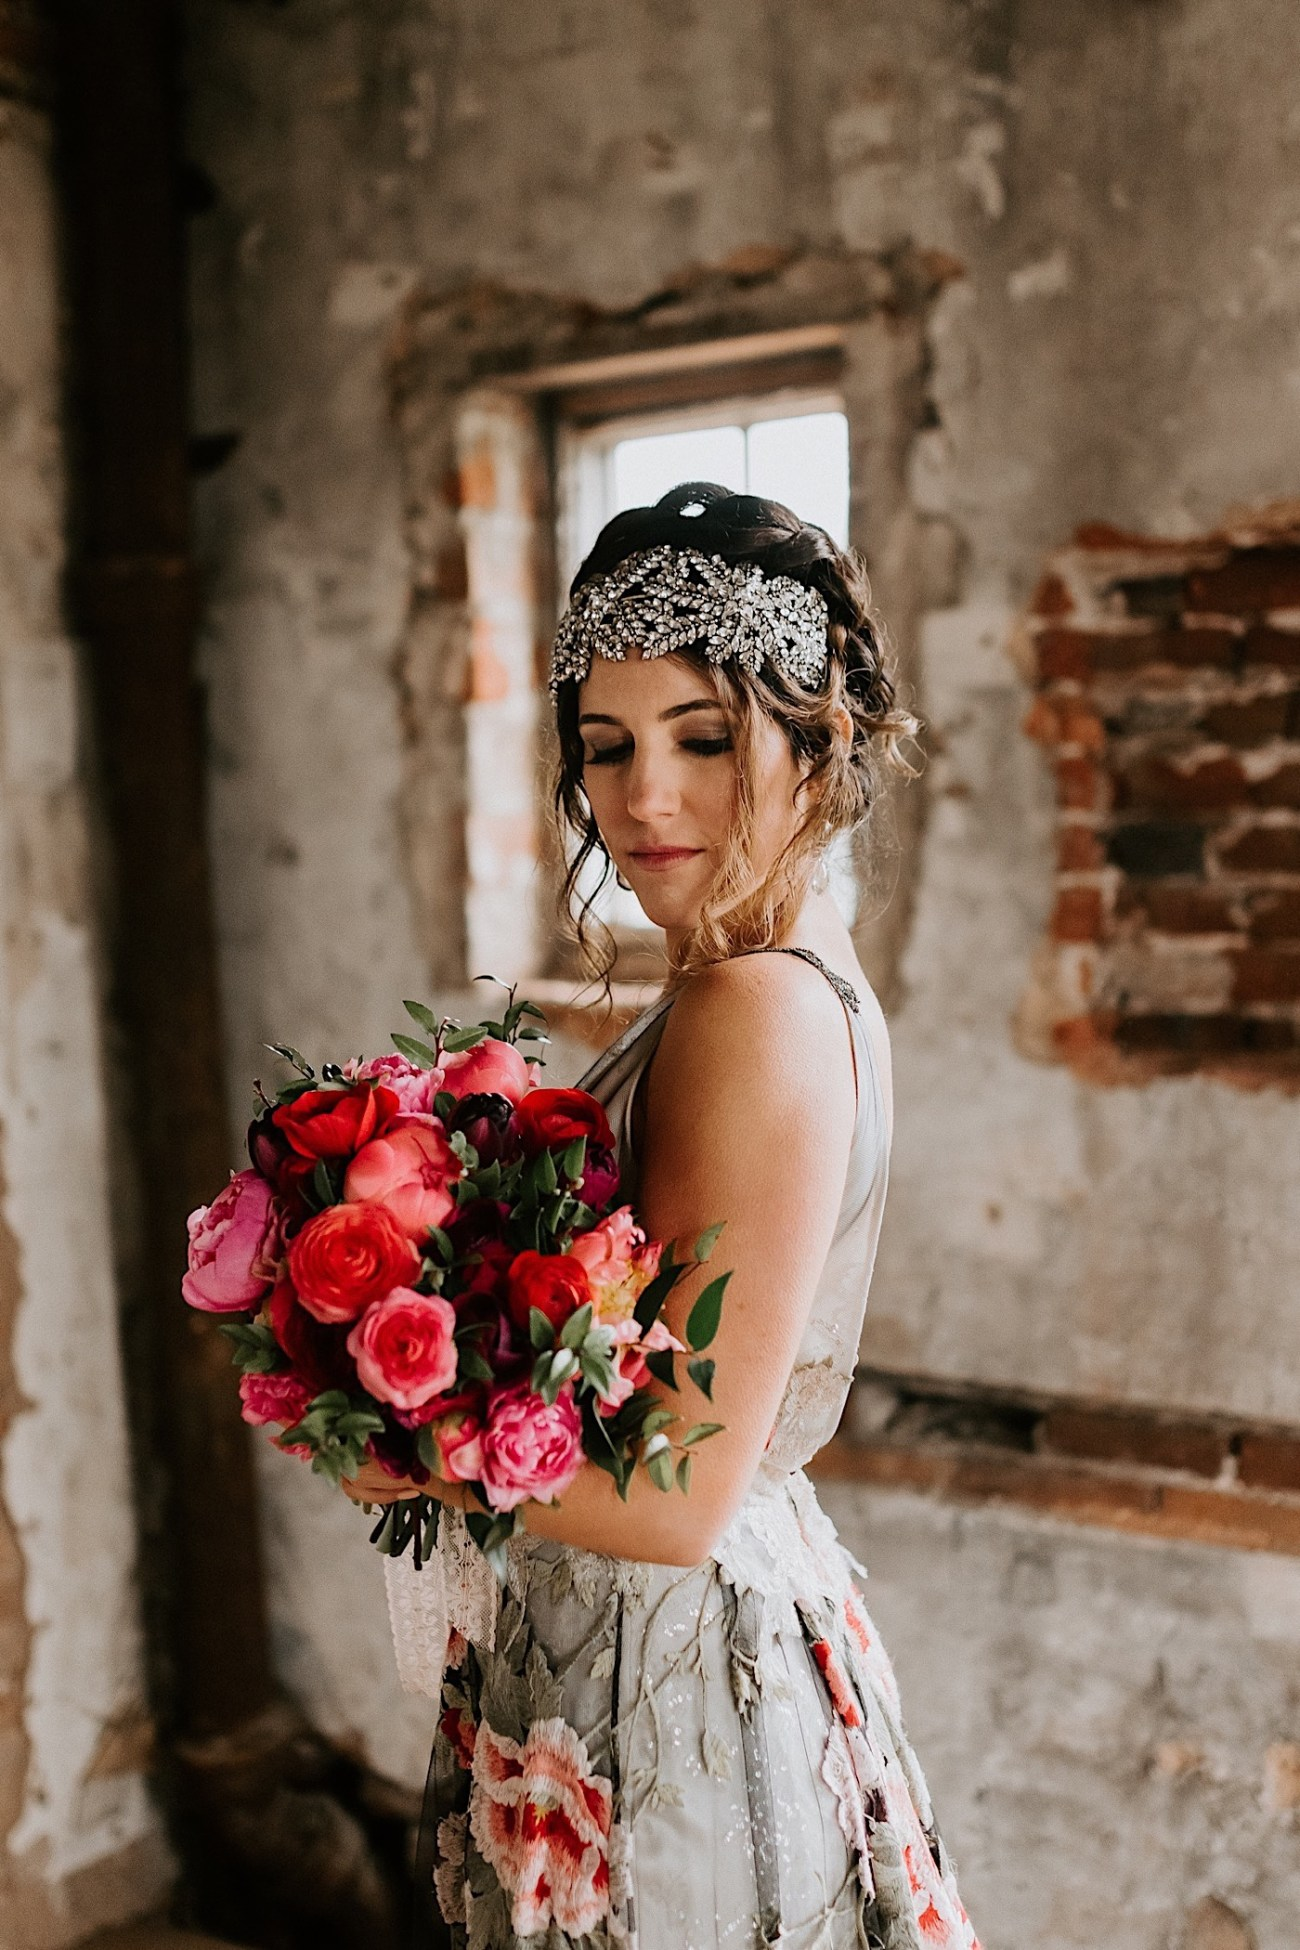 Colorful wedding bouquet. Pink flowers wedding bouquet. Claire Pettibone Wedding dress. Ravena Wedding gown by Claire Pettibone. Black wedding dress inspiration. Philadelphia Wedding Photographer, Philadelphia Wedding Venue, Barnsley Manor Wedding. Anais Possamai Photography